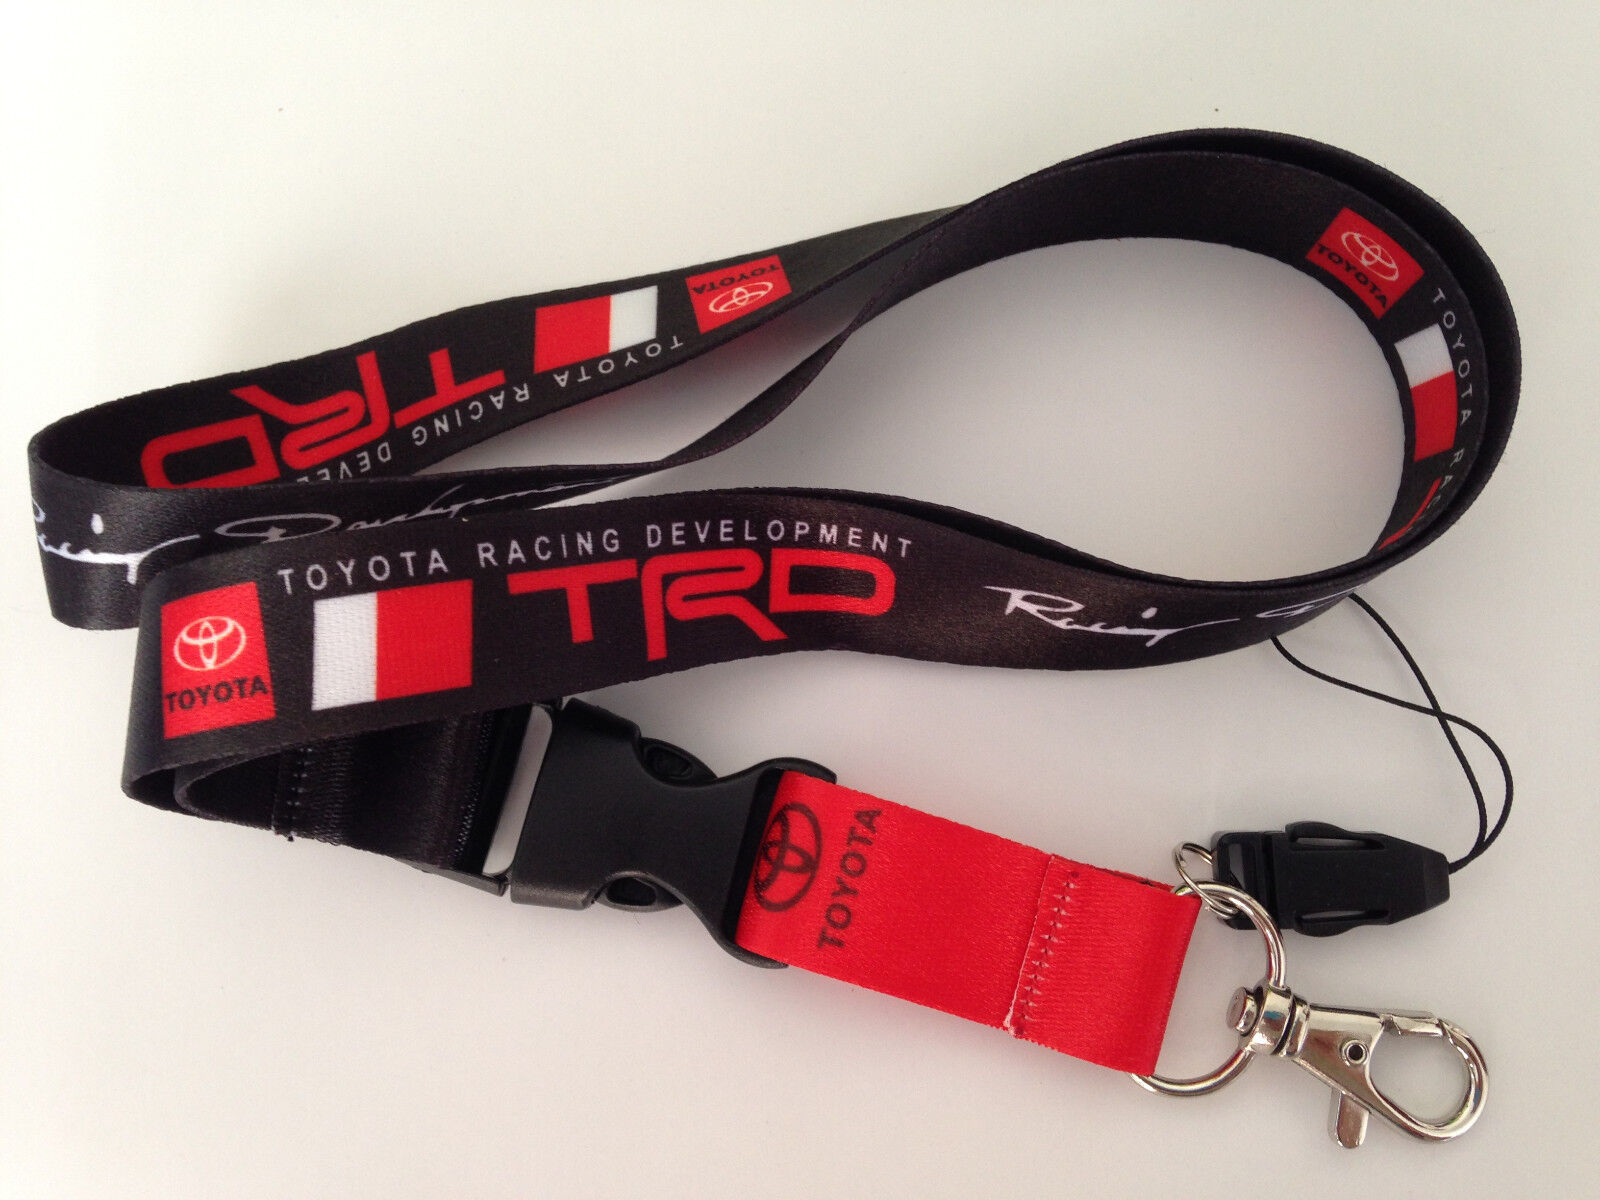 TOYOTA TRD JDM Lanyard Keychain Quick Release Thermal Transfer Printing 1062